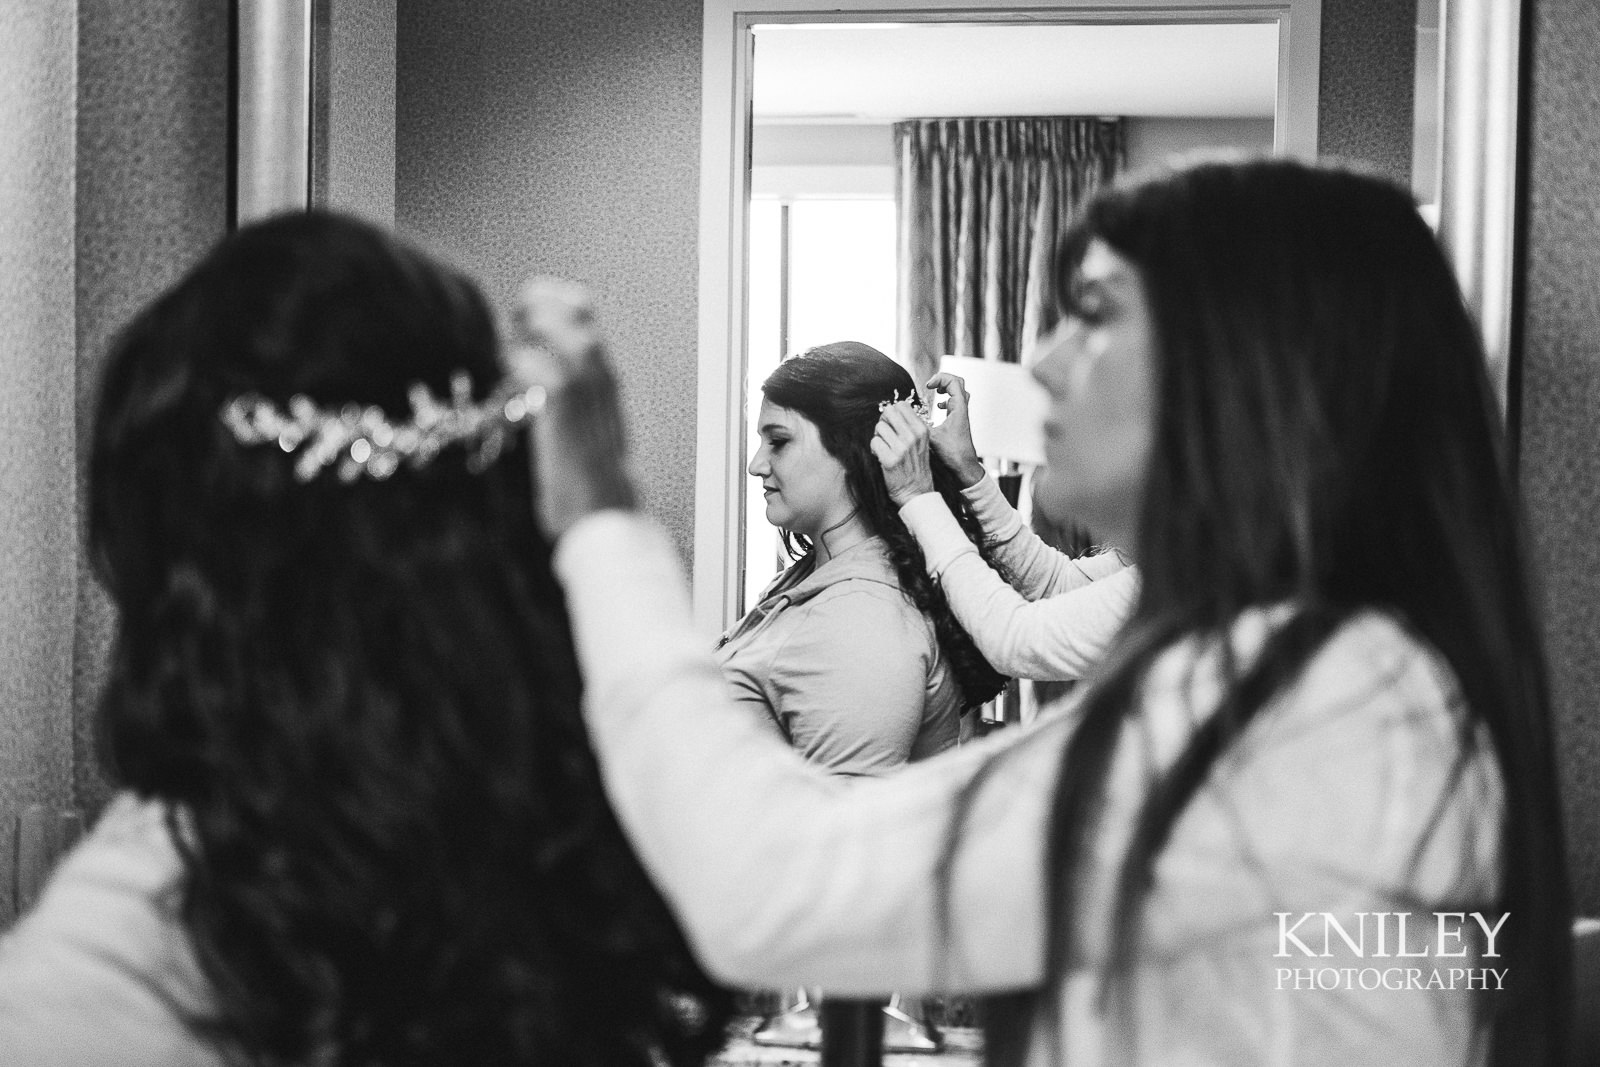 002 - Strathallan Hotel - Rochester NY wedding getting ready pictures - XT2B4308.jpg